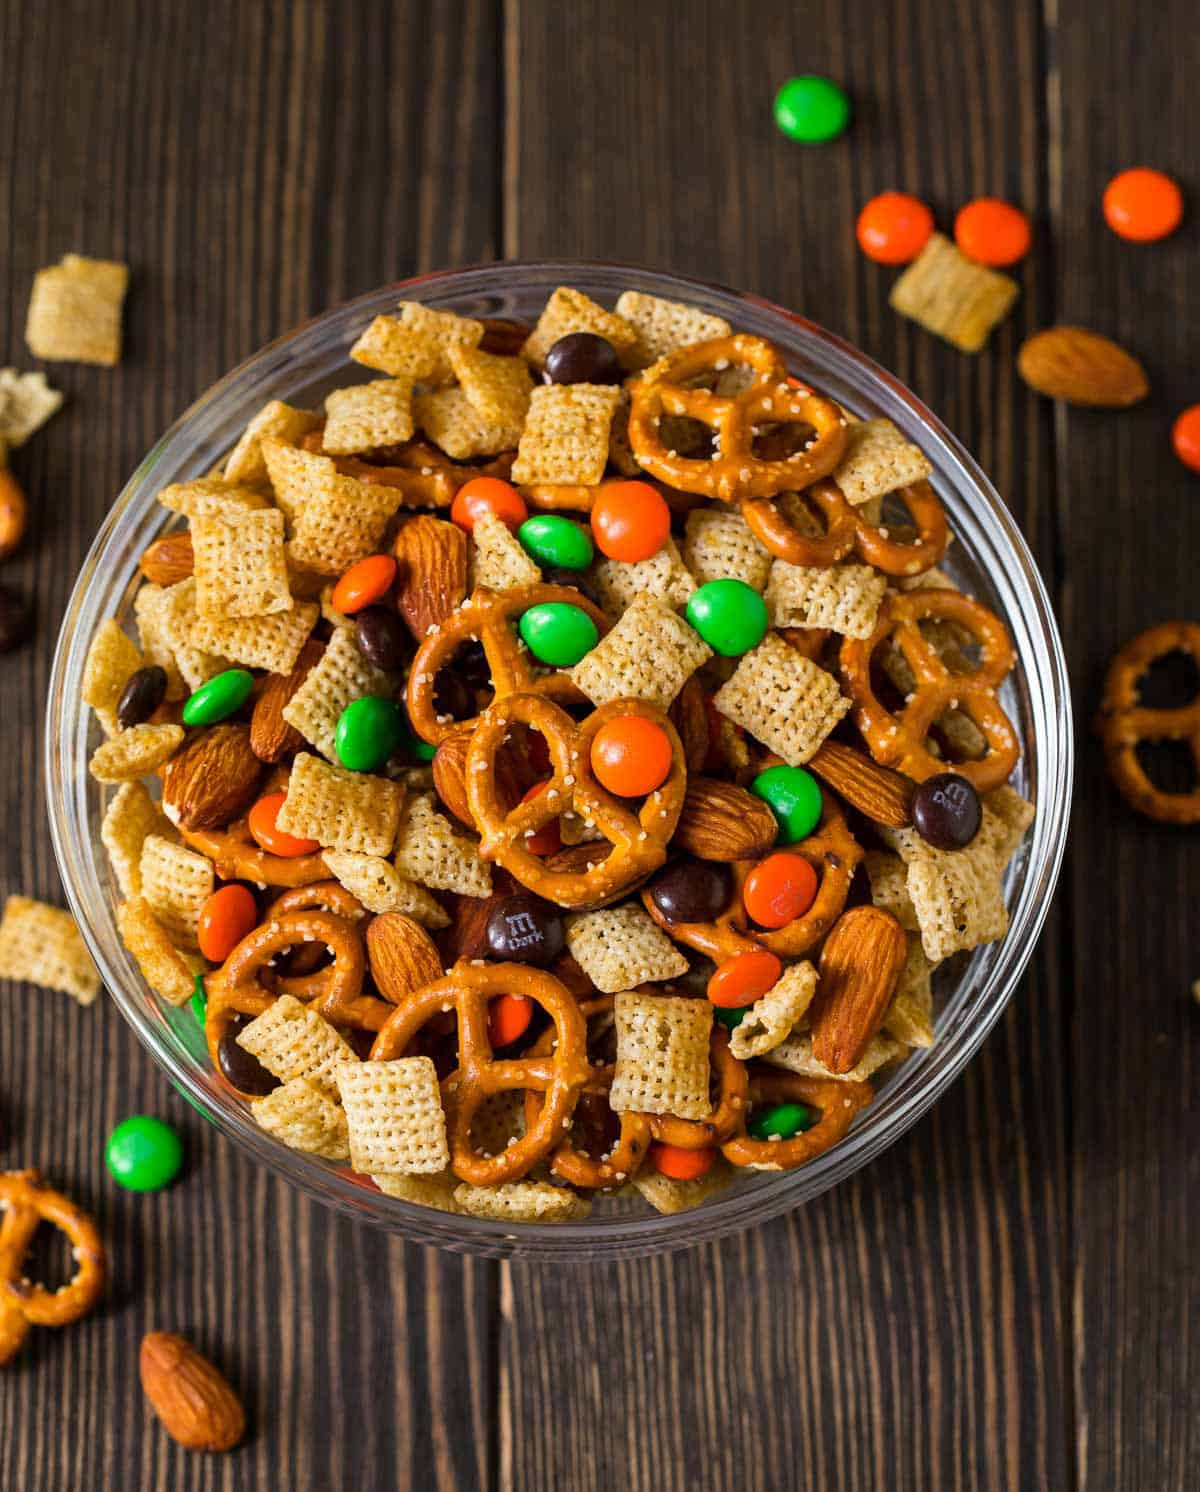 Chocolate Orange Party Mix. Sweet, salty, and perfect for Halloween! You can use halloween colored chocolates or swap out the colors for Christmas or your team's colors for game day. #chexmix #partymix #wellplatedrecipes